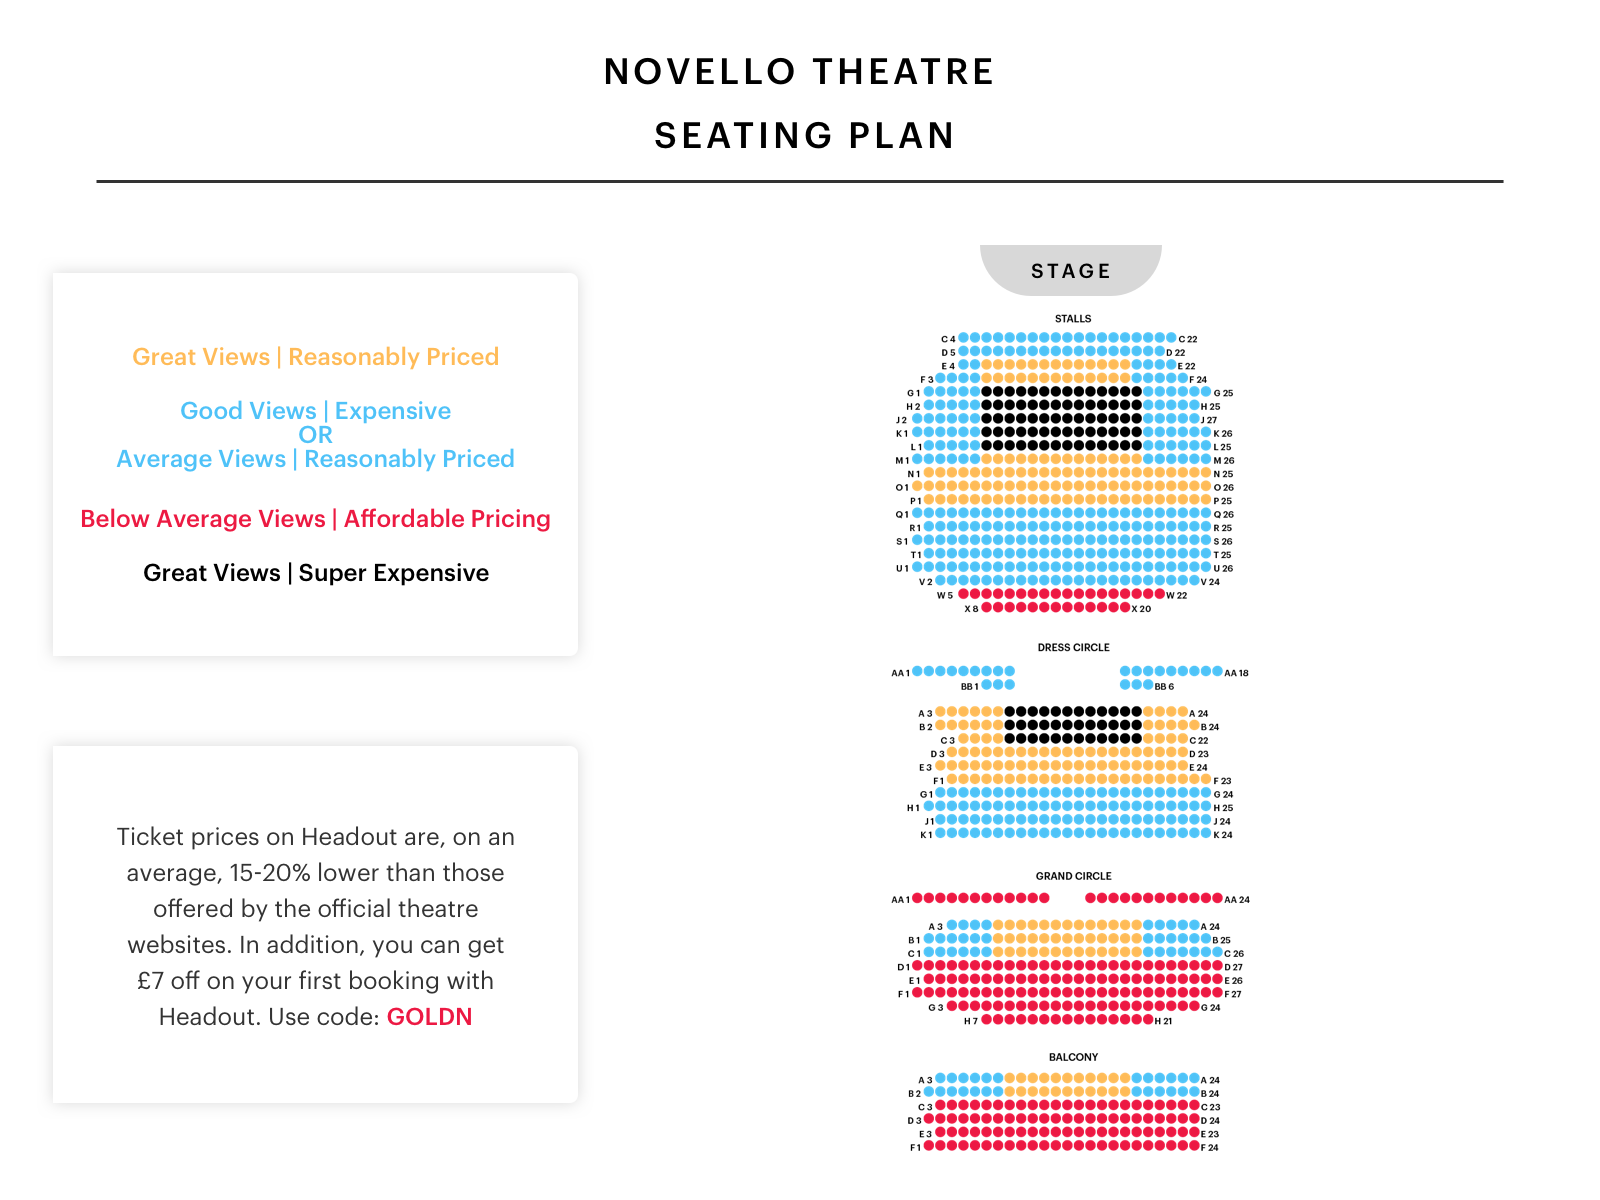 Navigating The Novello Theatre Seating Plan